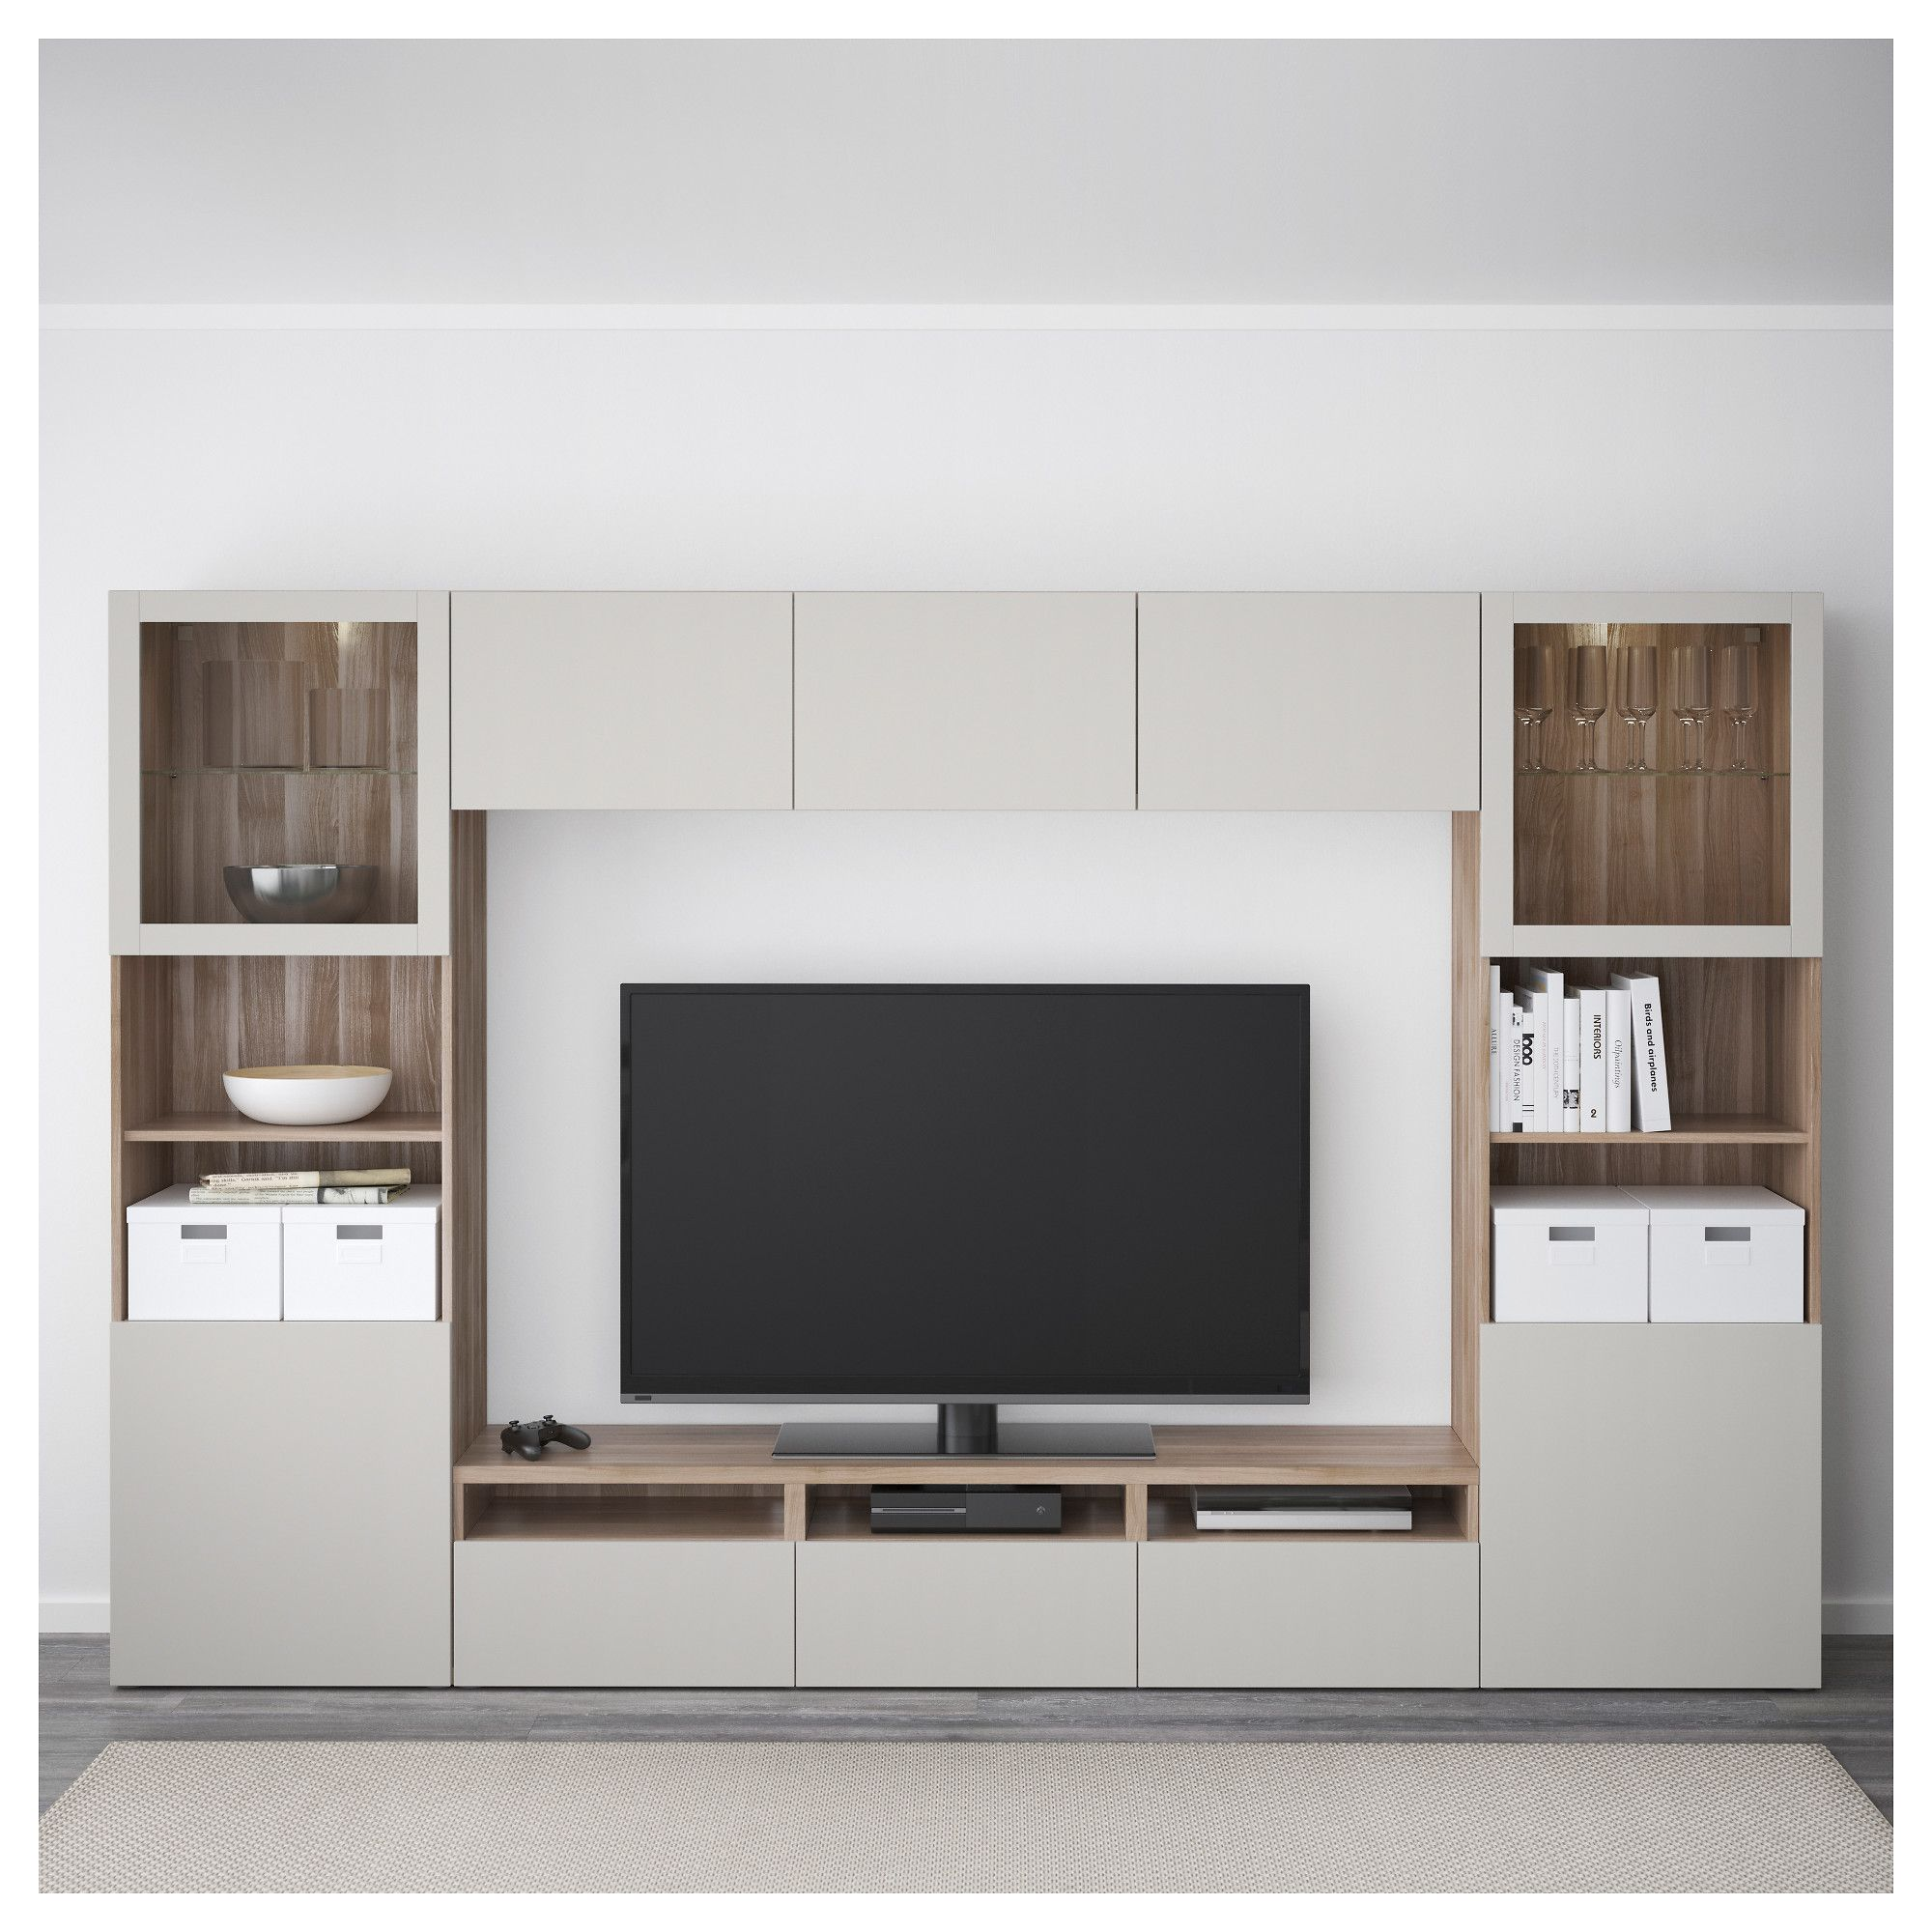 Besta Tv BestÅ Tv Storage Combination Glass Doors Walnut Effect Light Gray